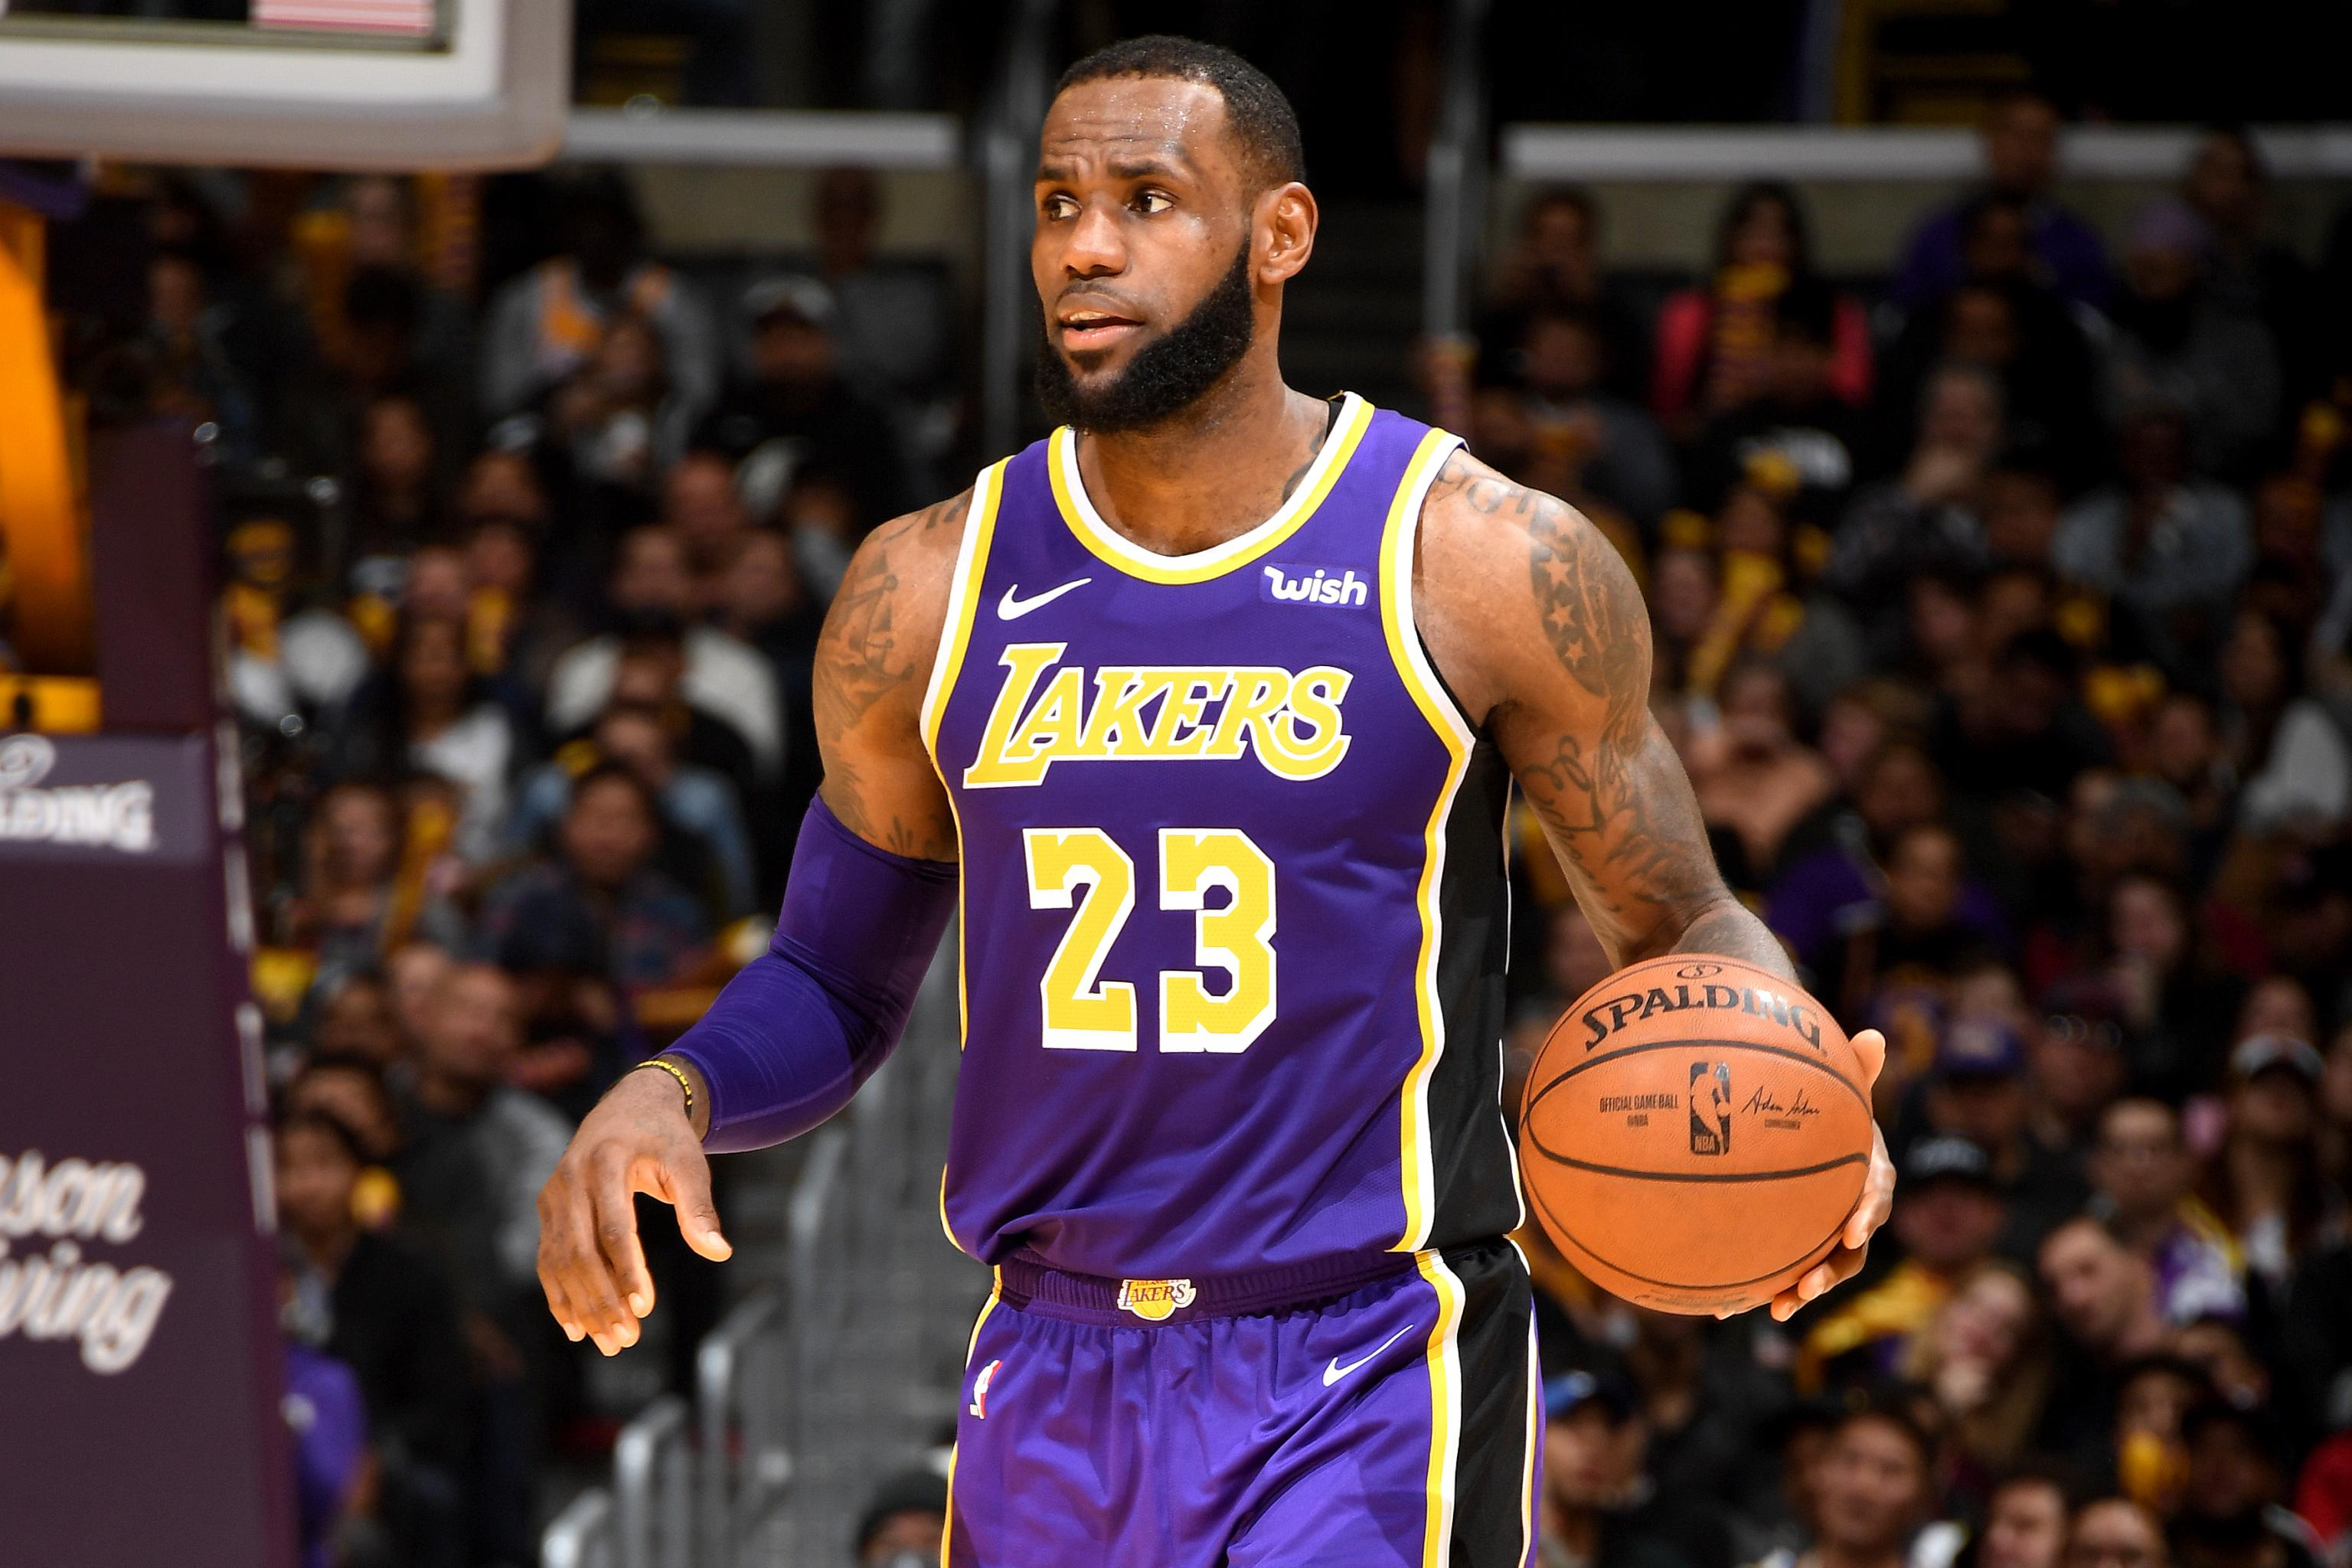 fd19f8f92e6 LeBron James Scores 42 Points